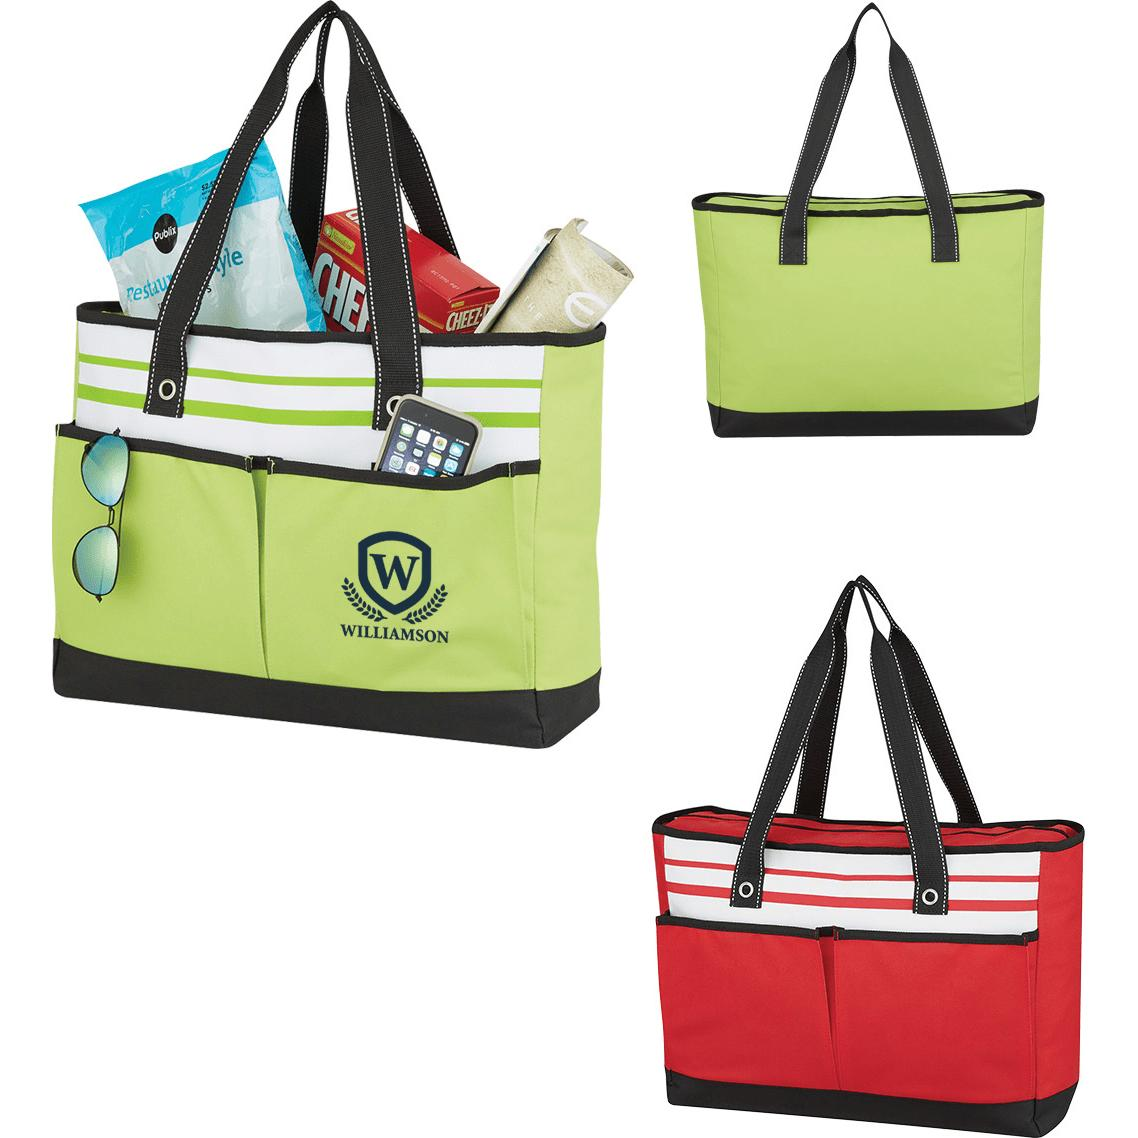 Fashionable Roomy Tote Bag Personalized